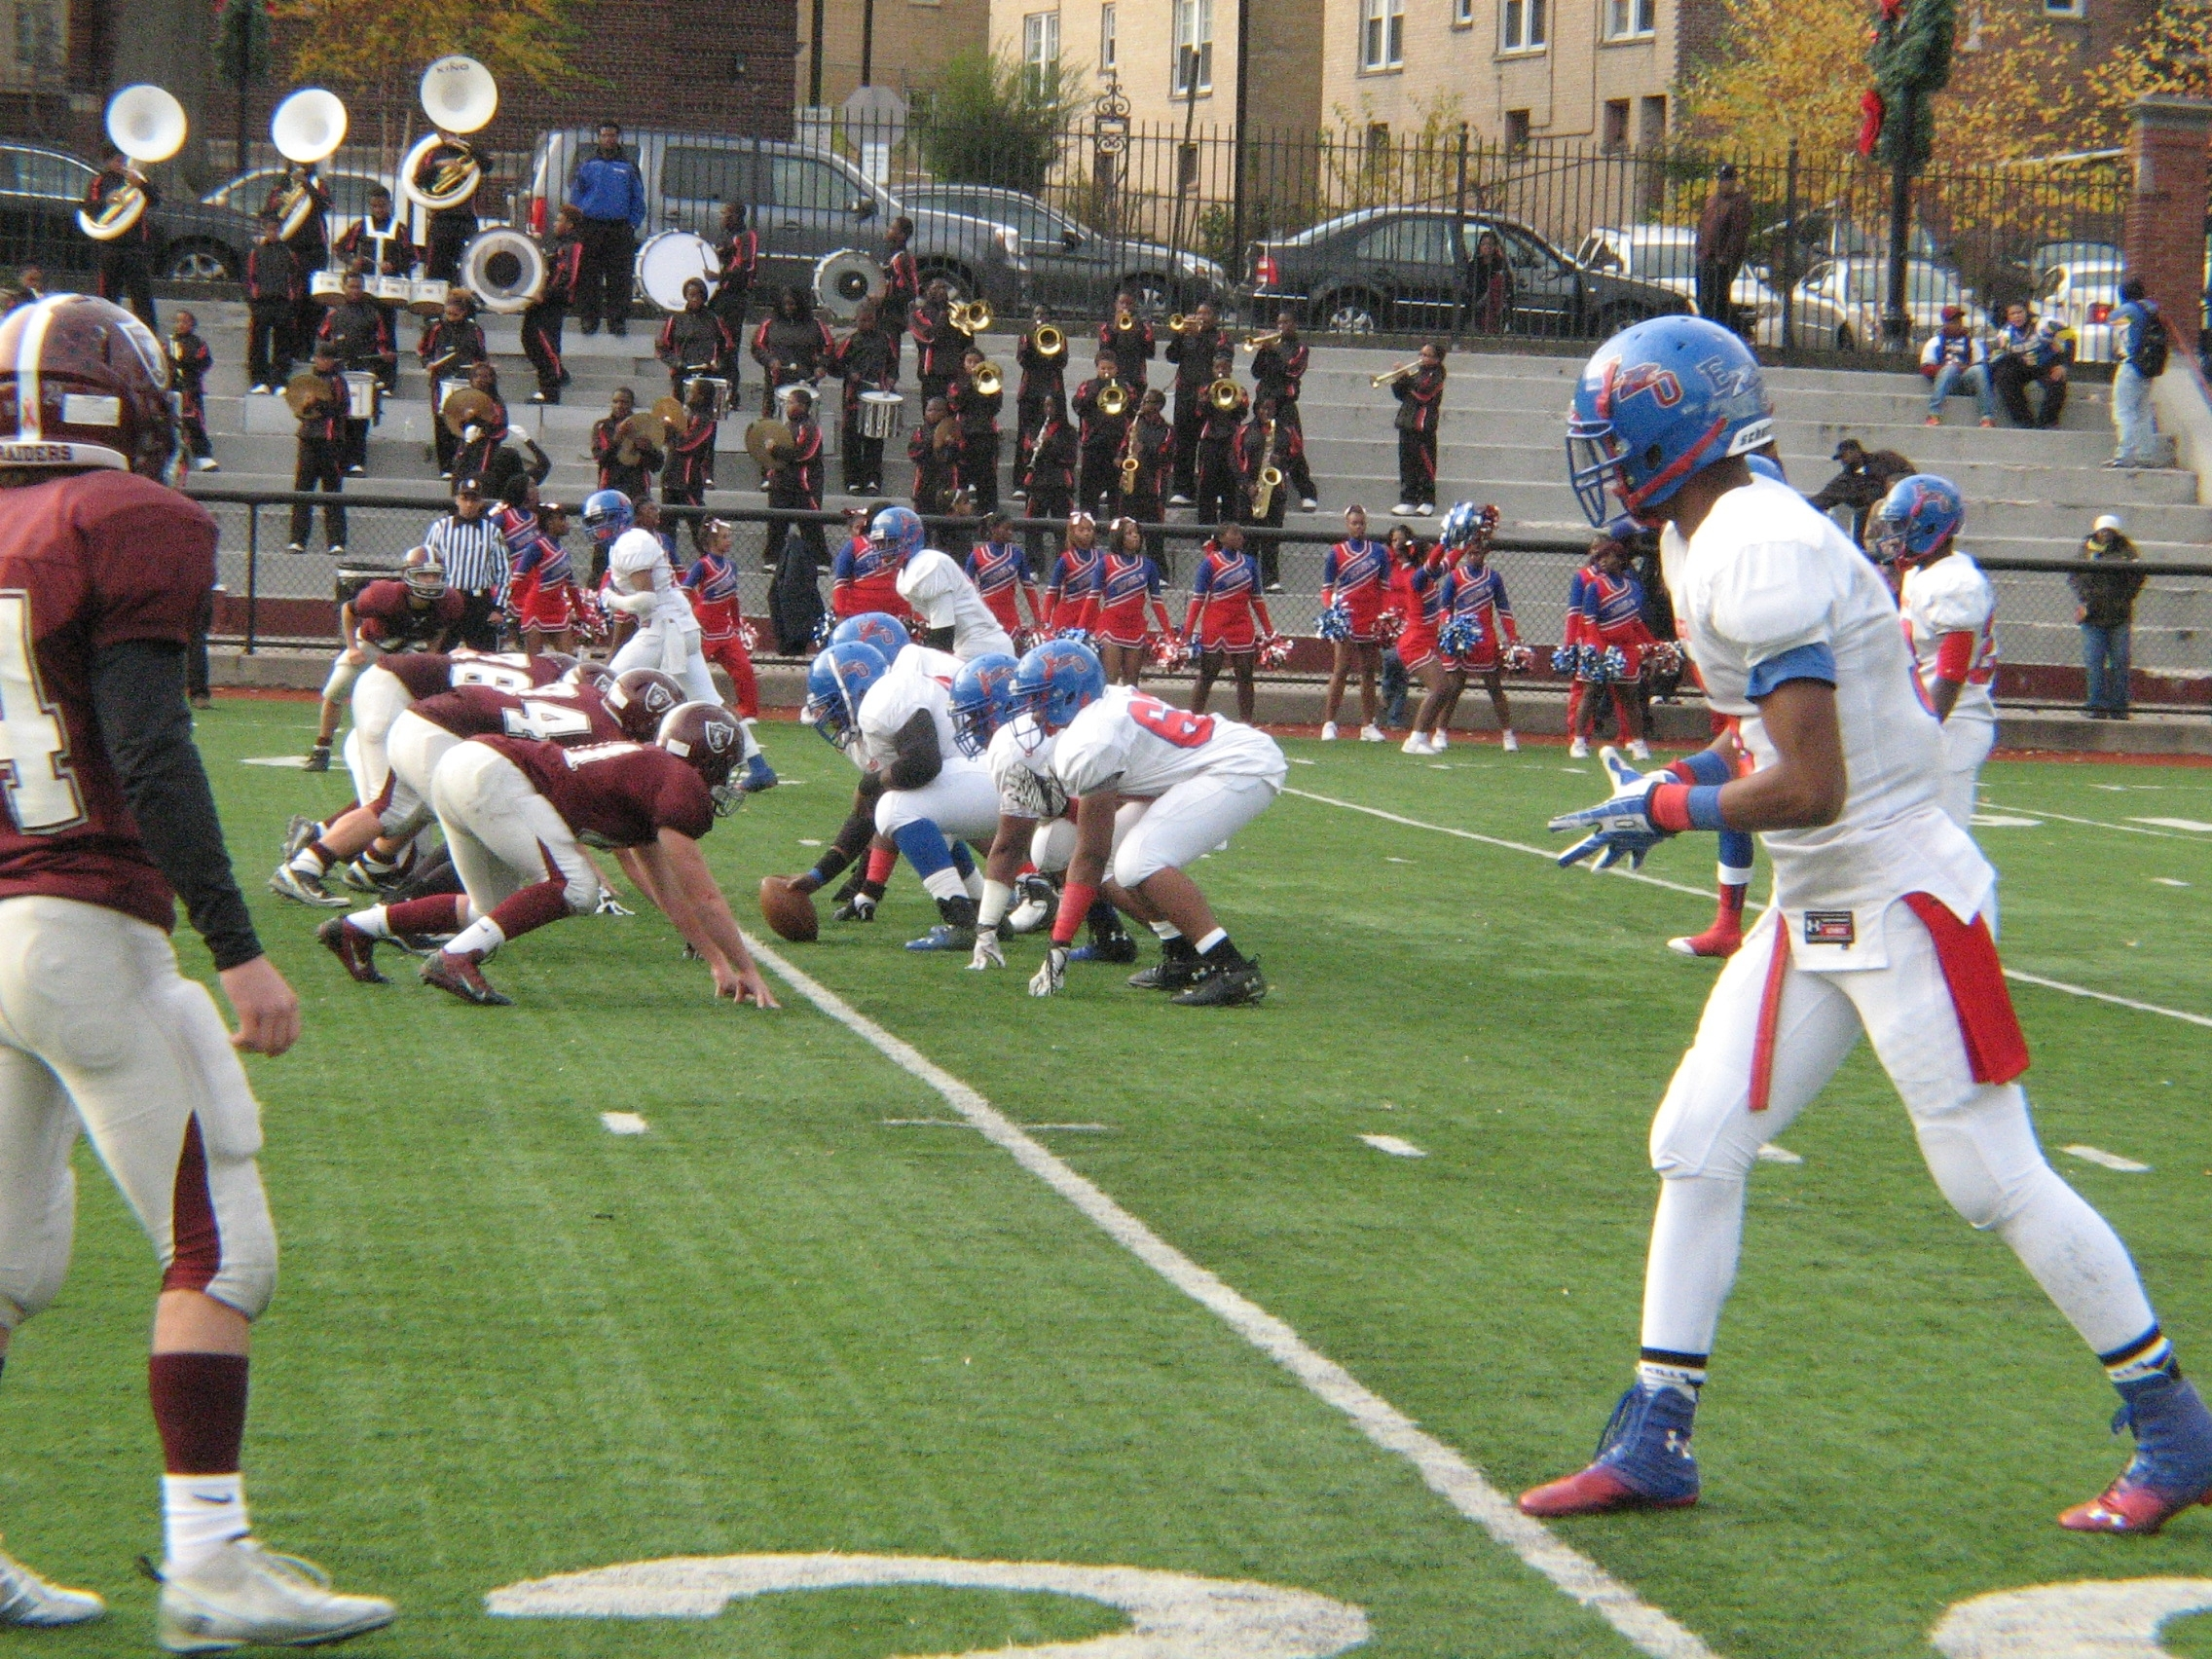 57073b9672d1582cb7abcampusfootballjpg The East Orange Barringer Thanksgiving Rivalry Continues